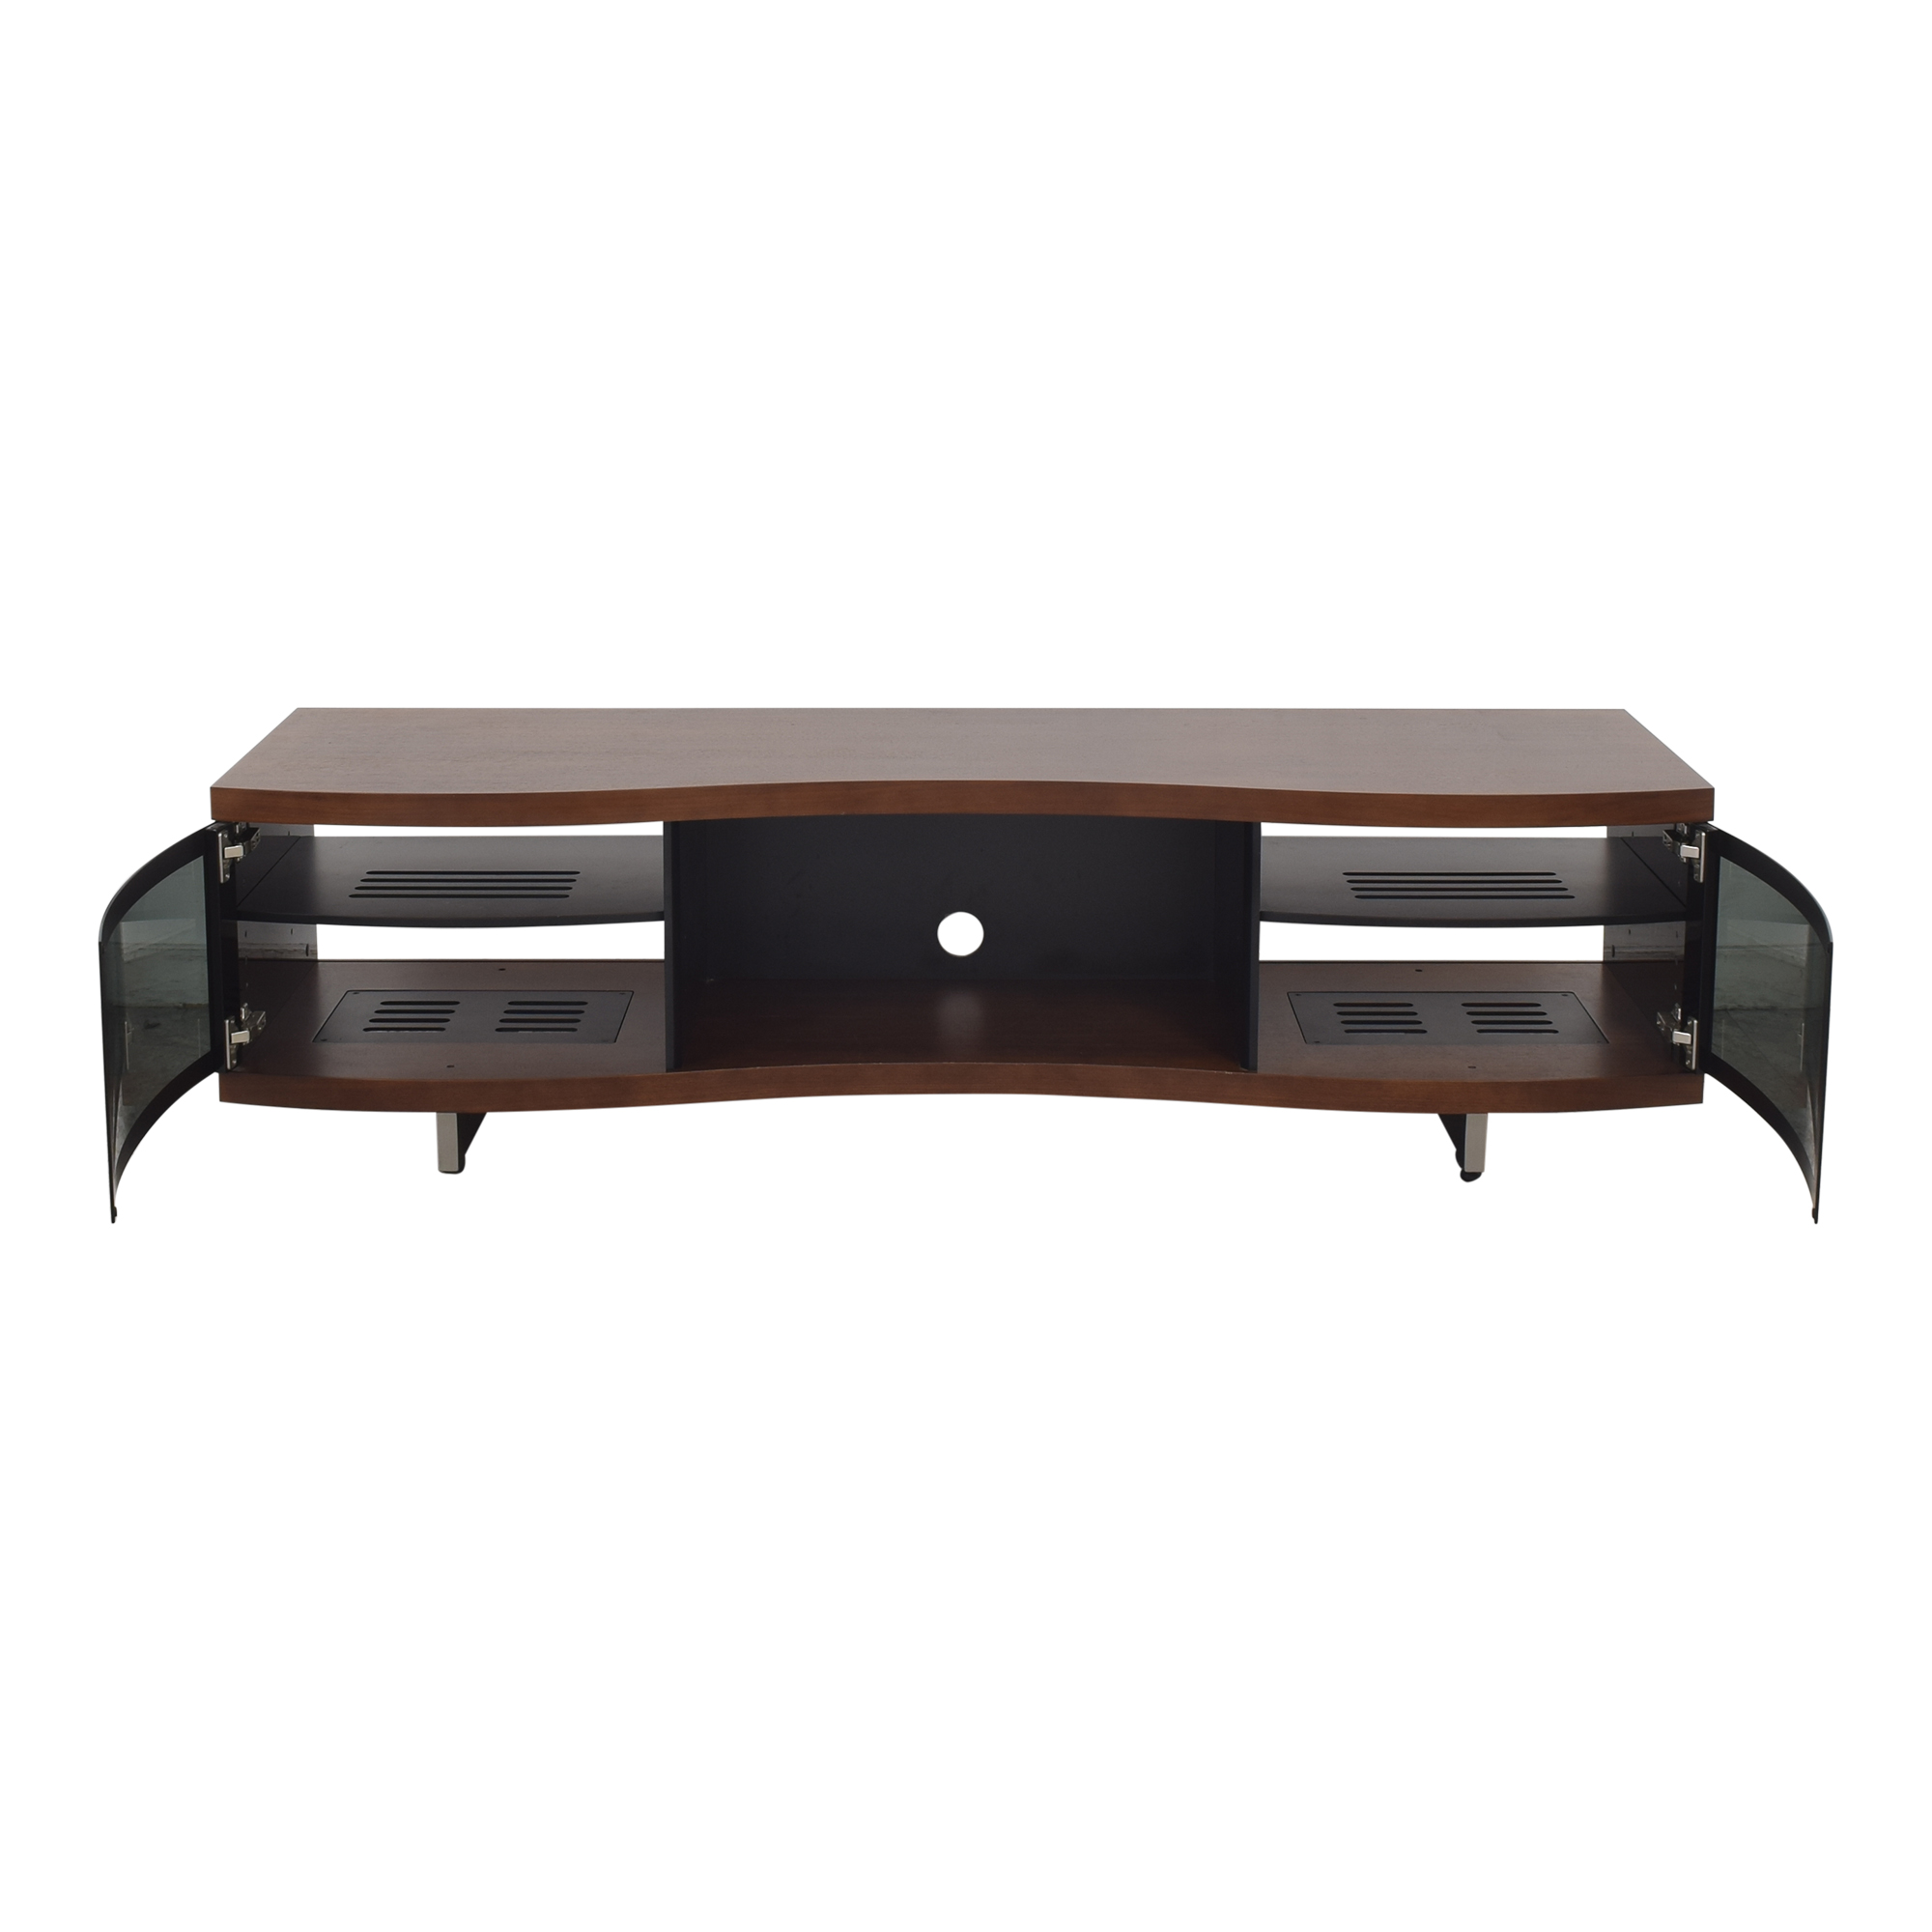 BDI Furniture BDI Furniture Ola Media Cabinet second hand